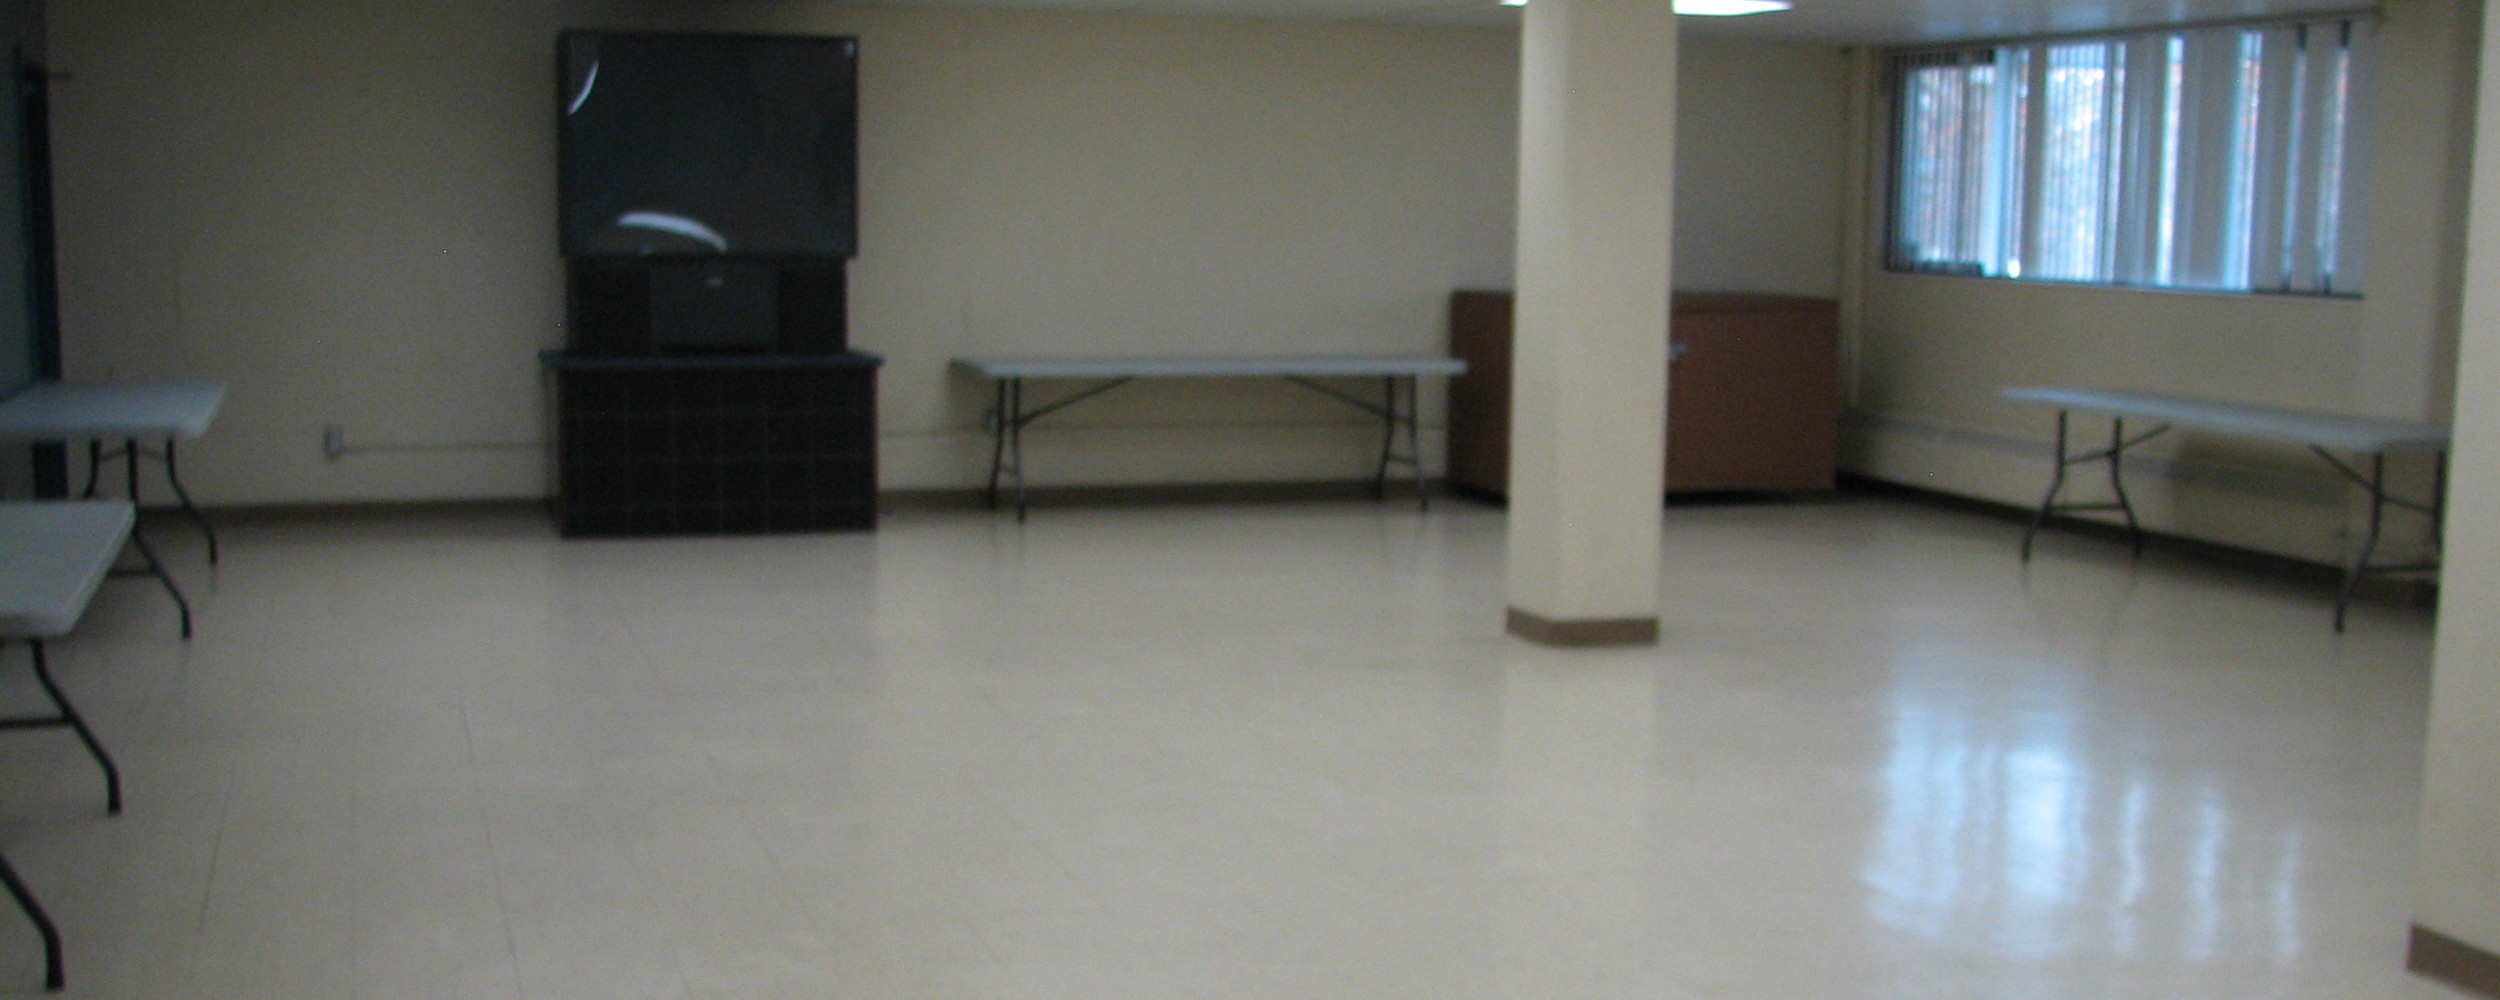 Recreation Centre - Meeting Room 1